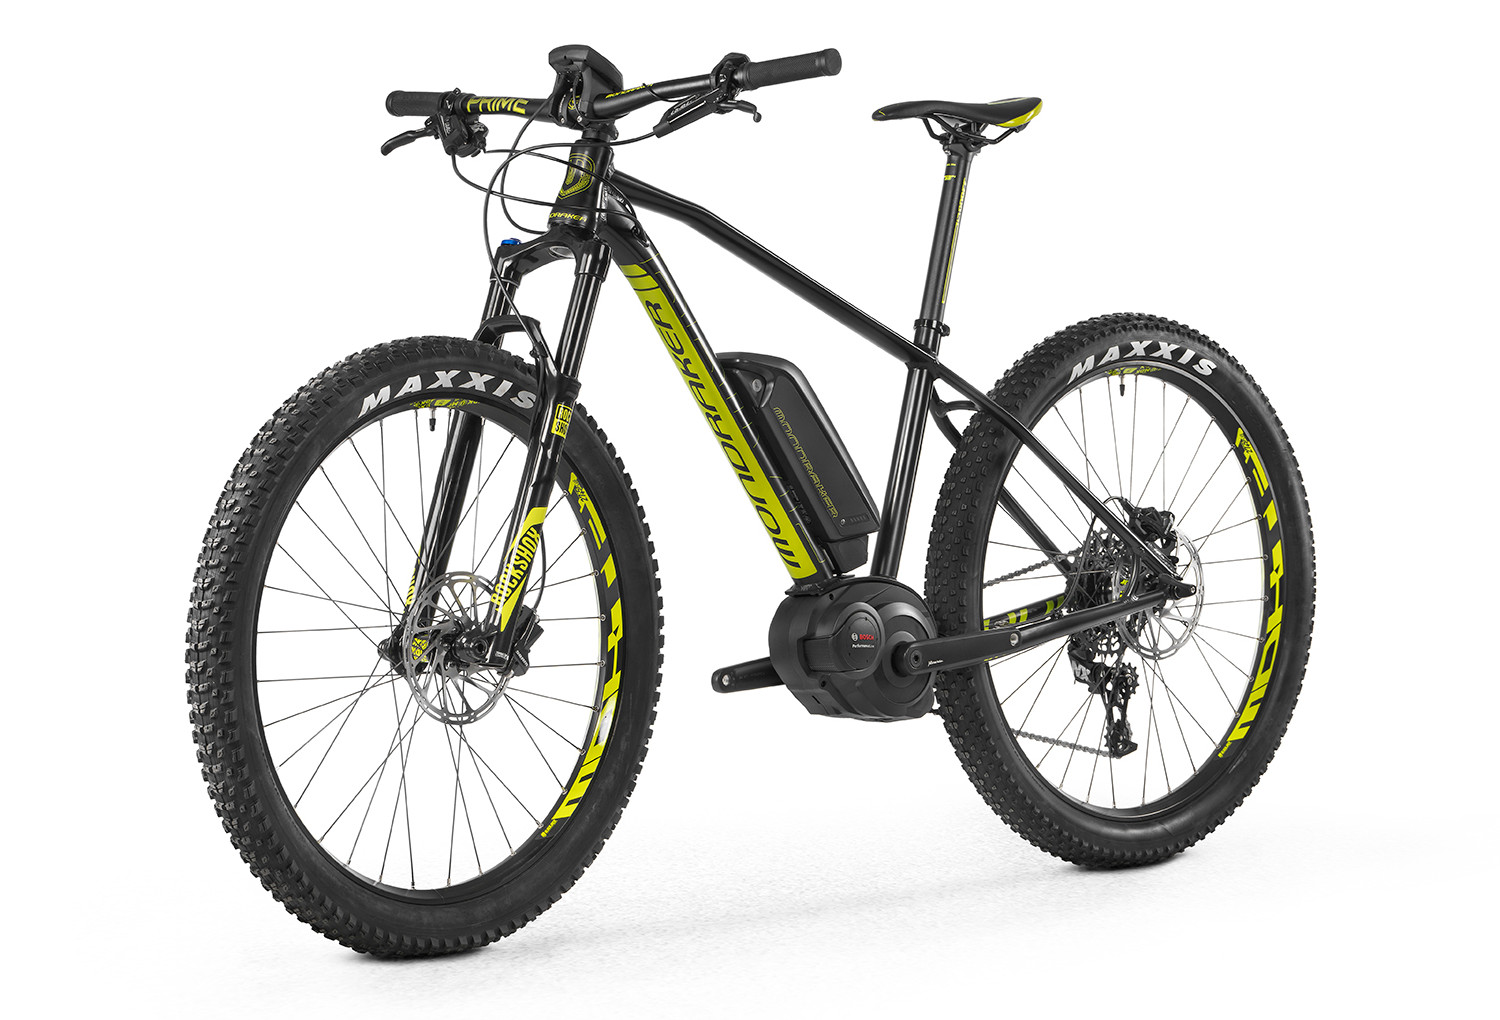 vtt electrique semi rigide mondraker e prime r bosch 500w sram nx 11v noir jaune. Black Bedroom Furniture Sets. Home Design Ideas